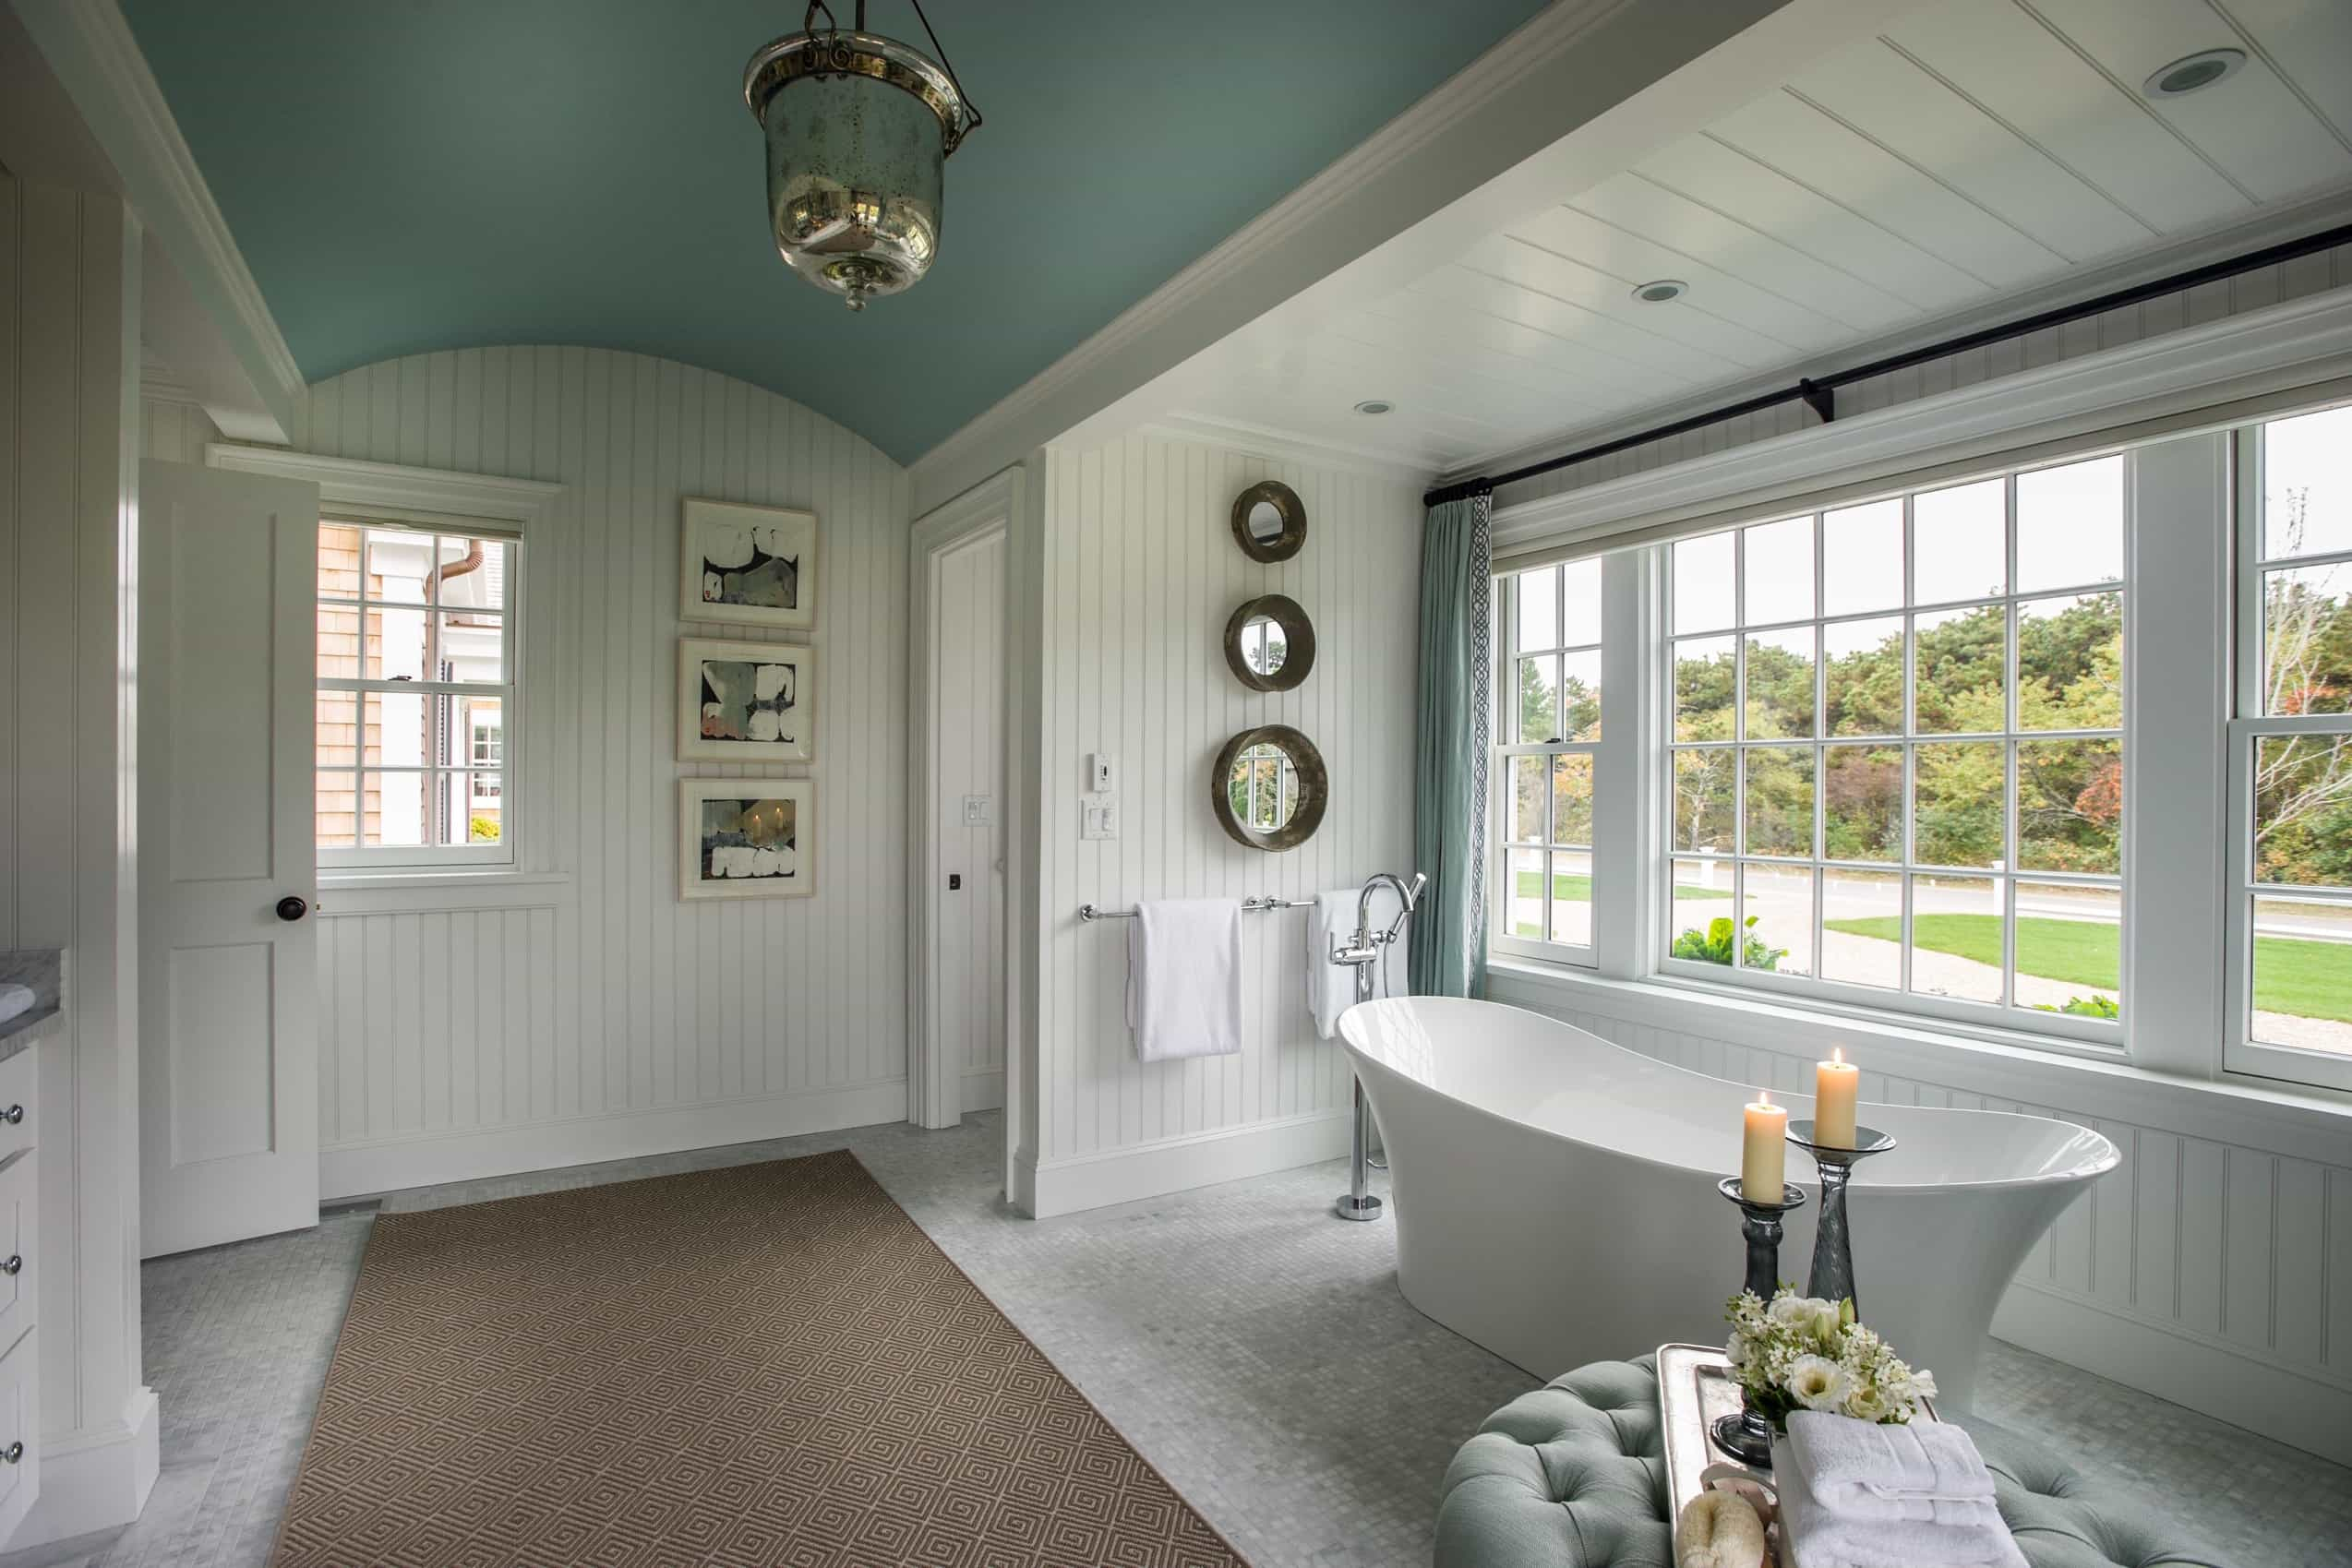 Featured Image of Country Cottage Bathroom With Free Standing Bathtub